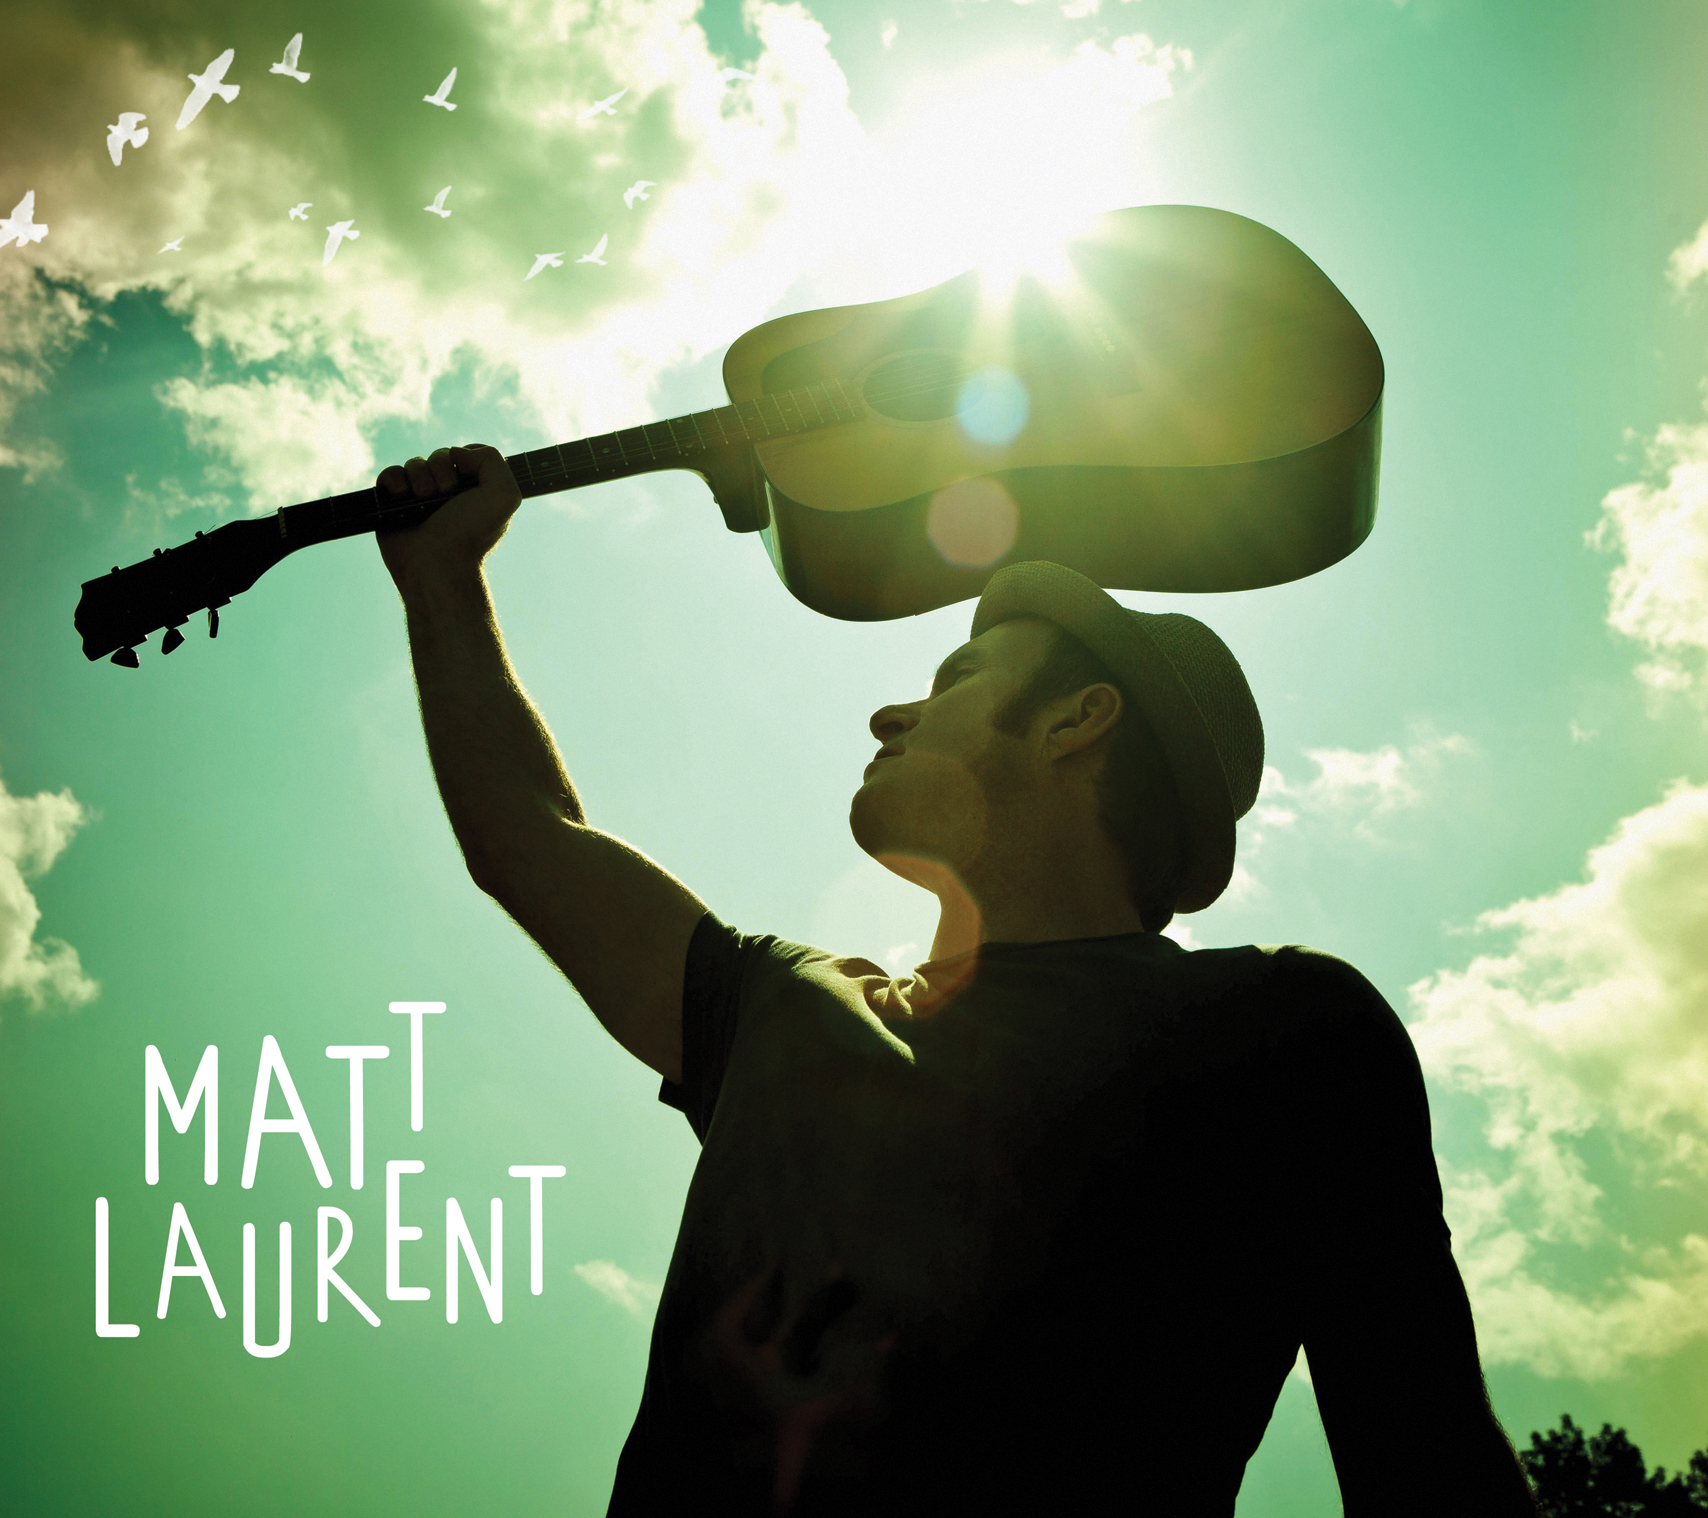 Matt Laurent